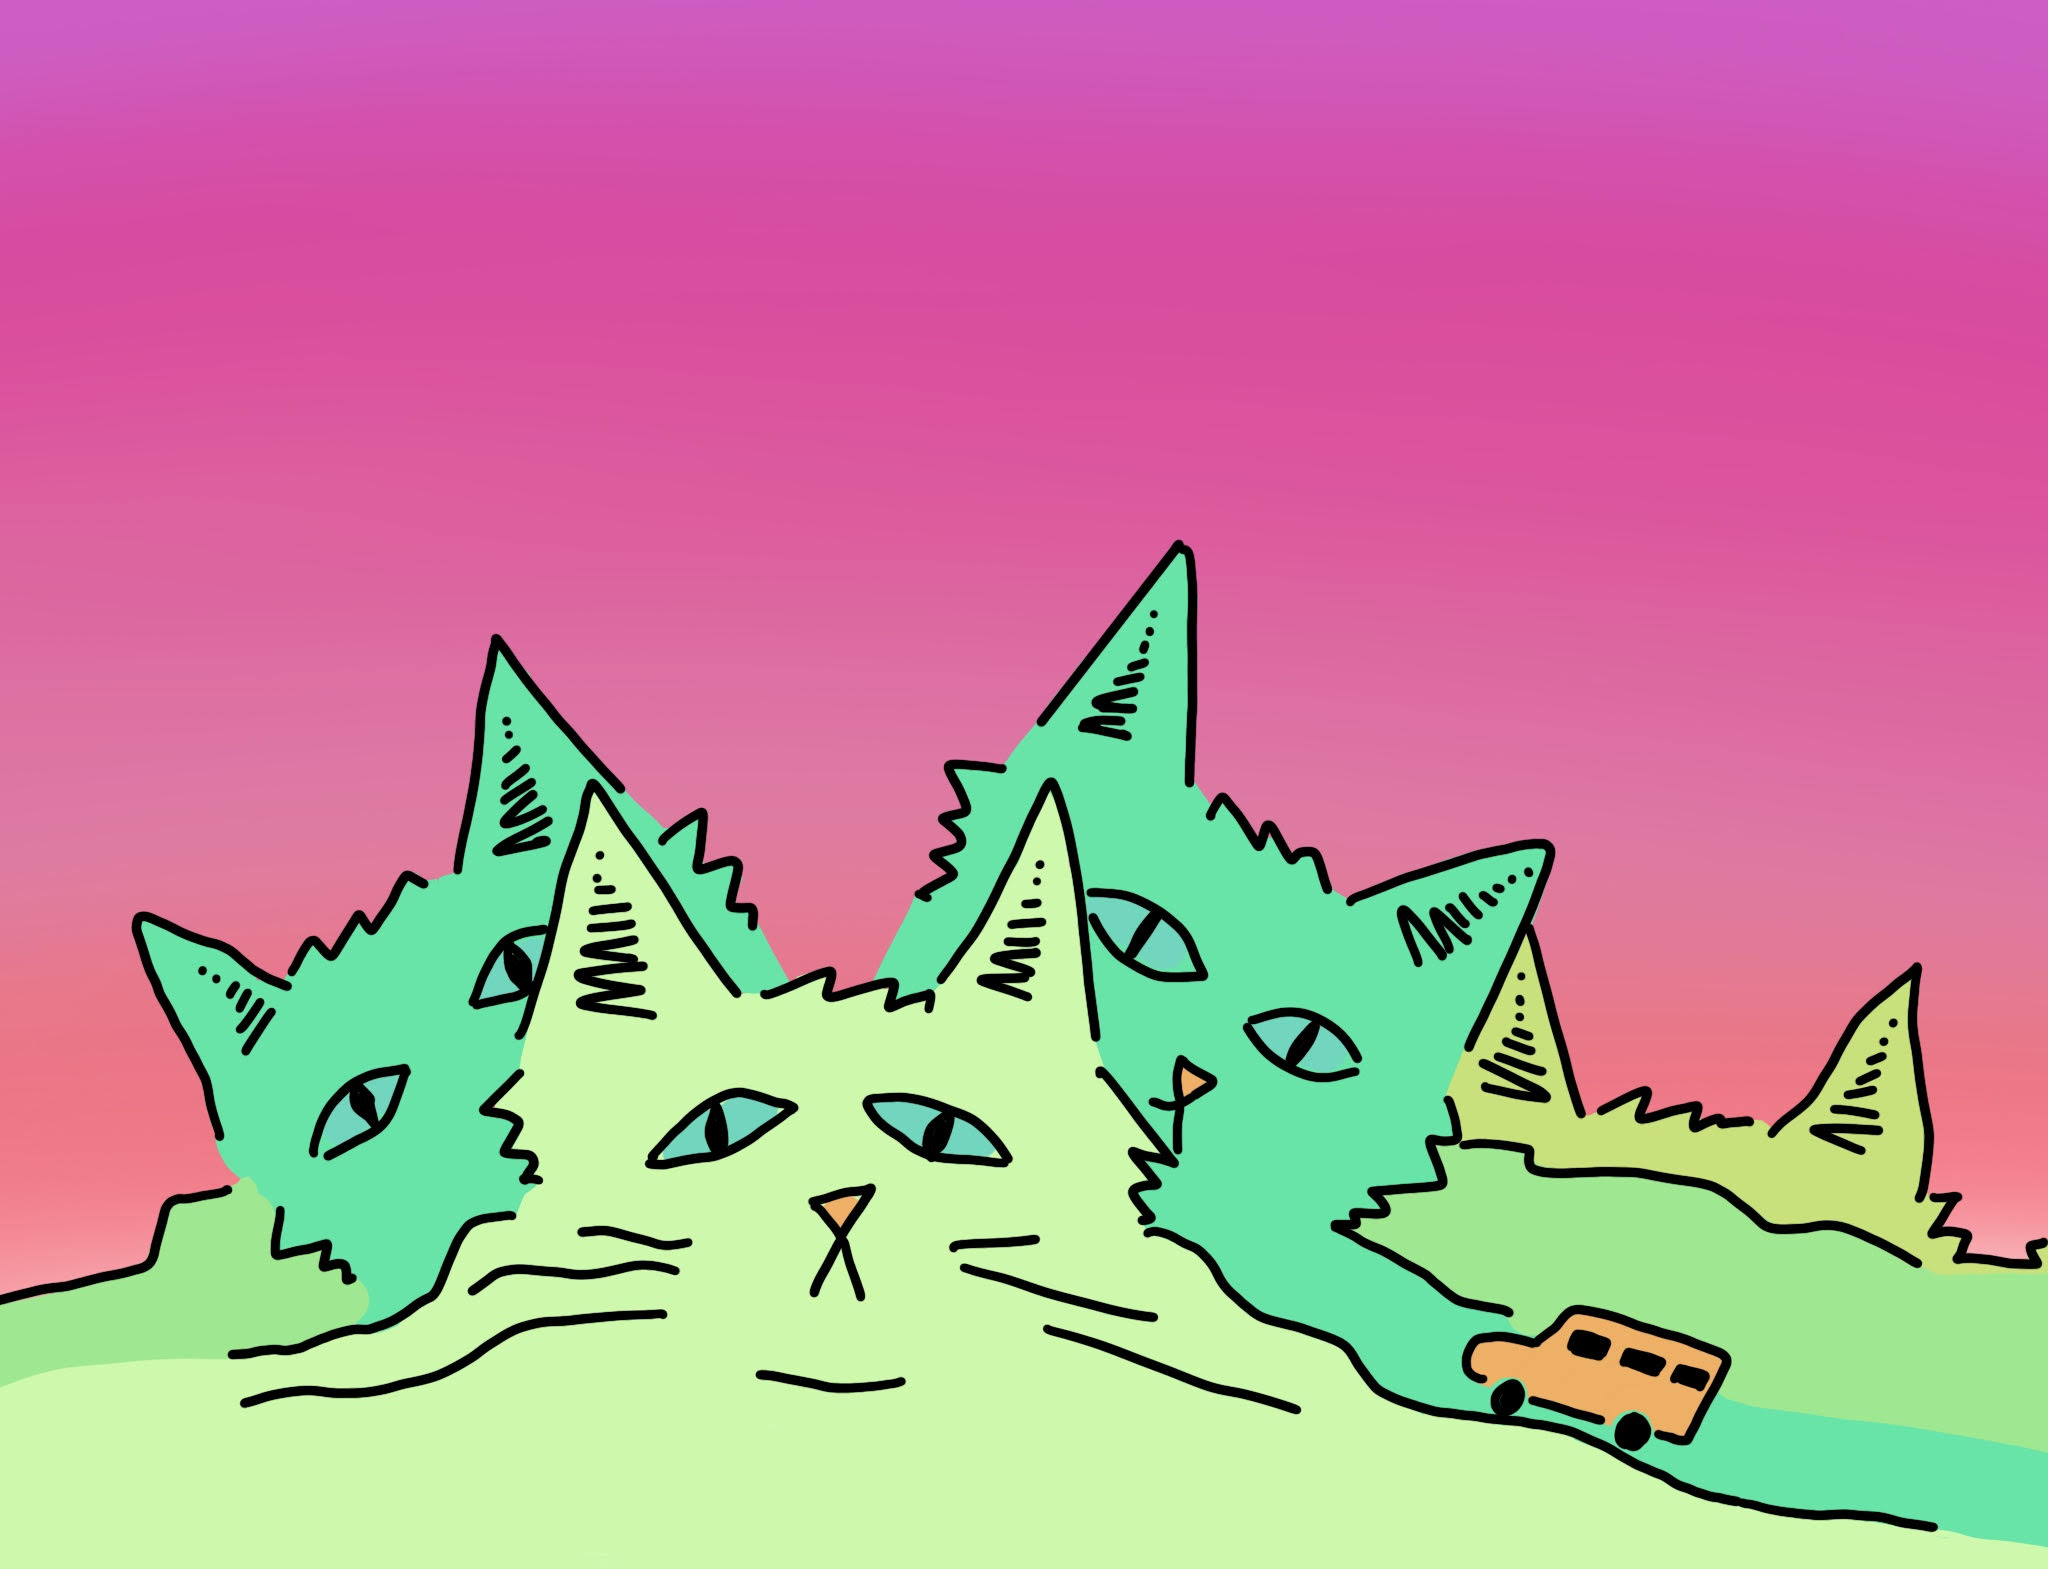 meowntains